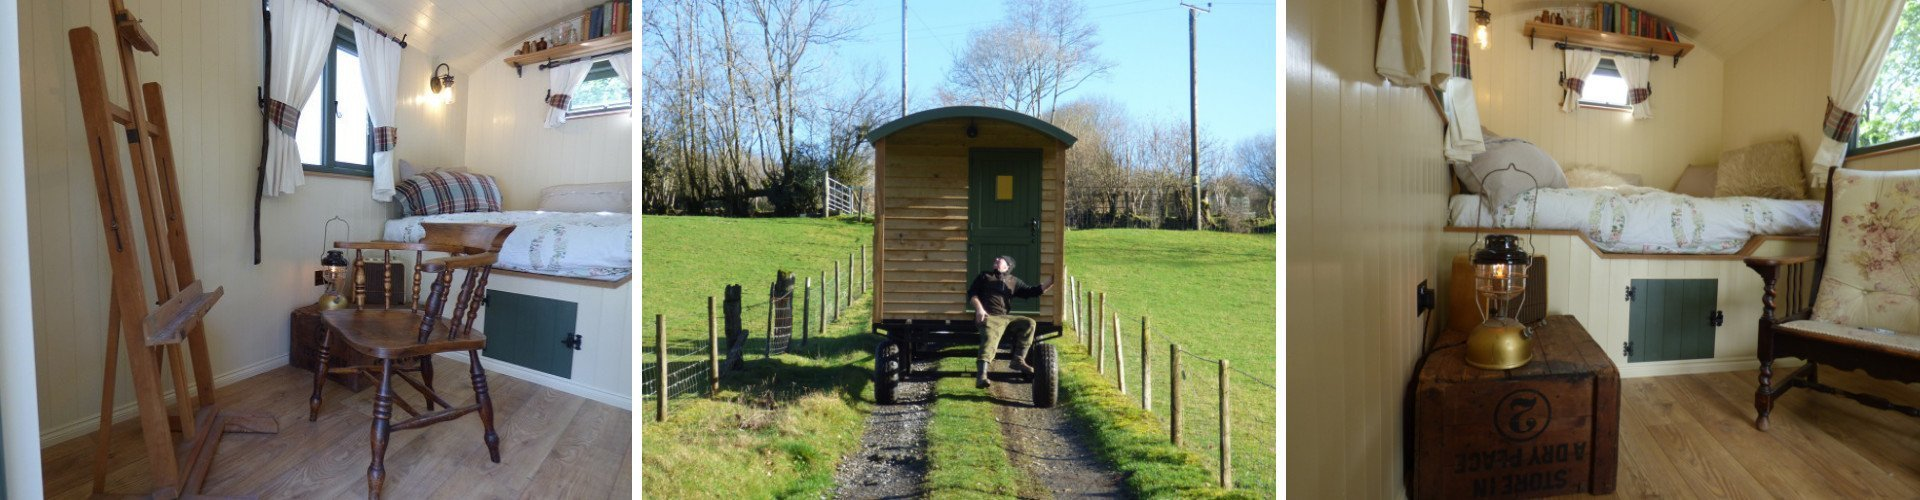 Stockman Shepherd Huts